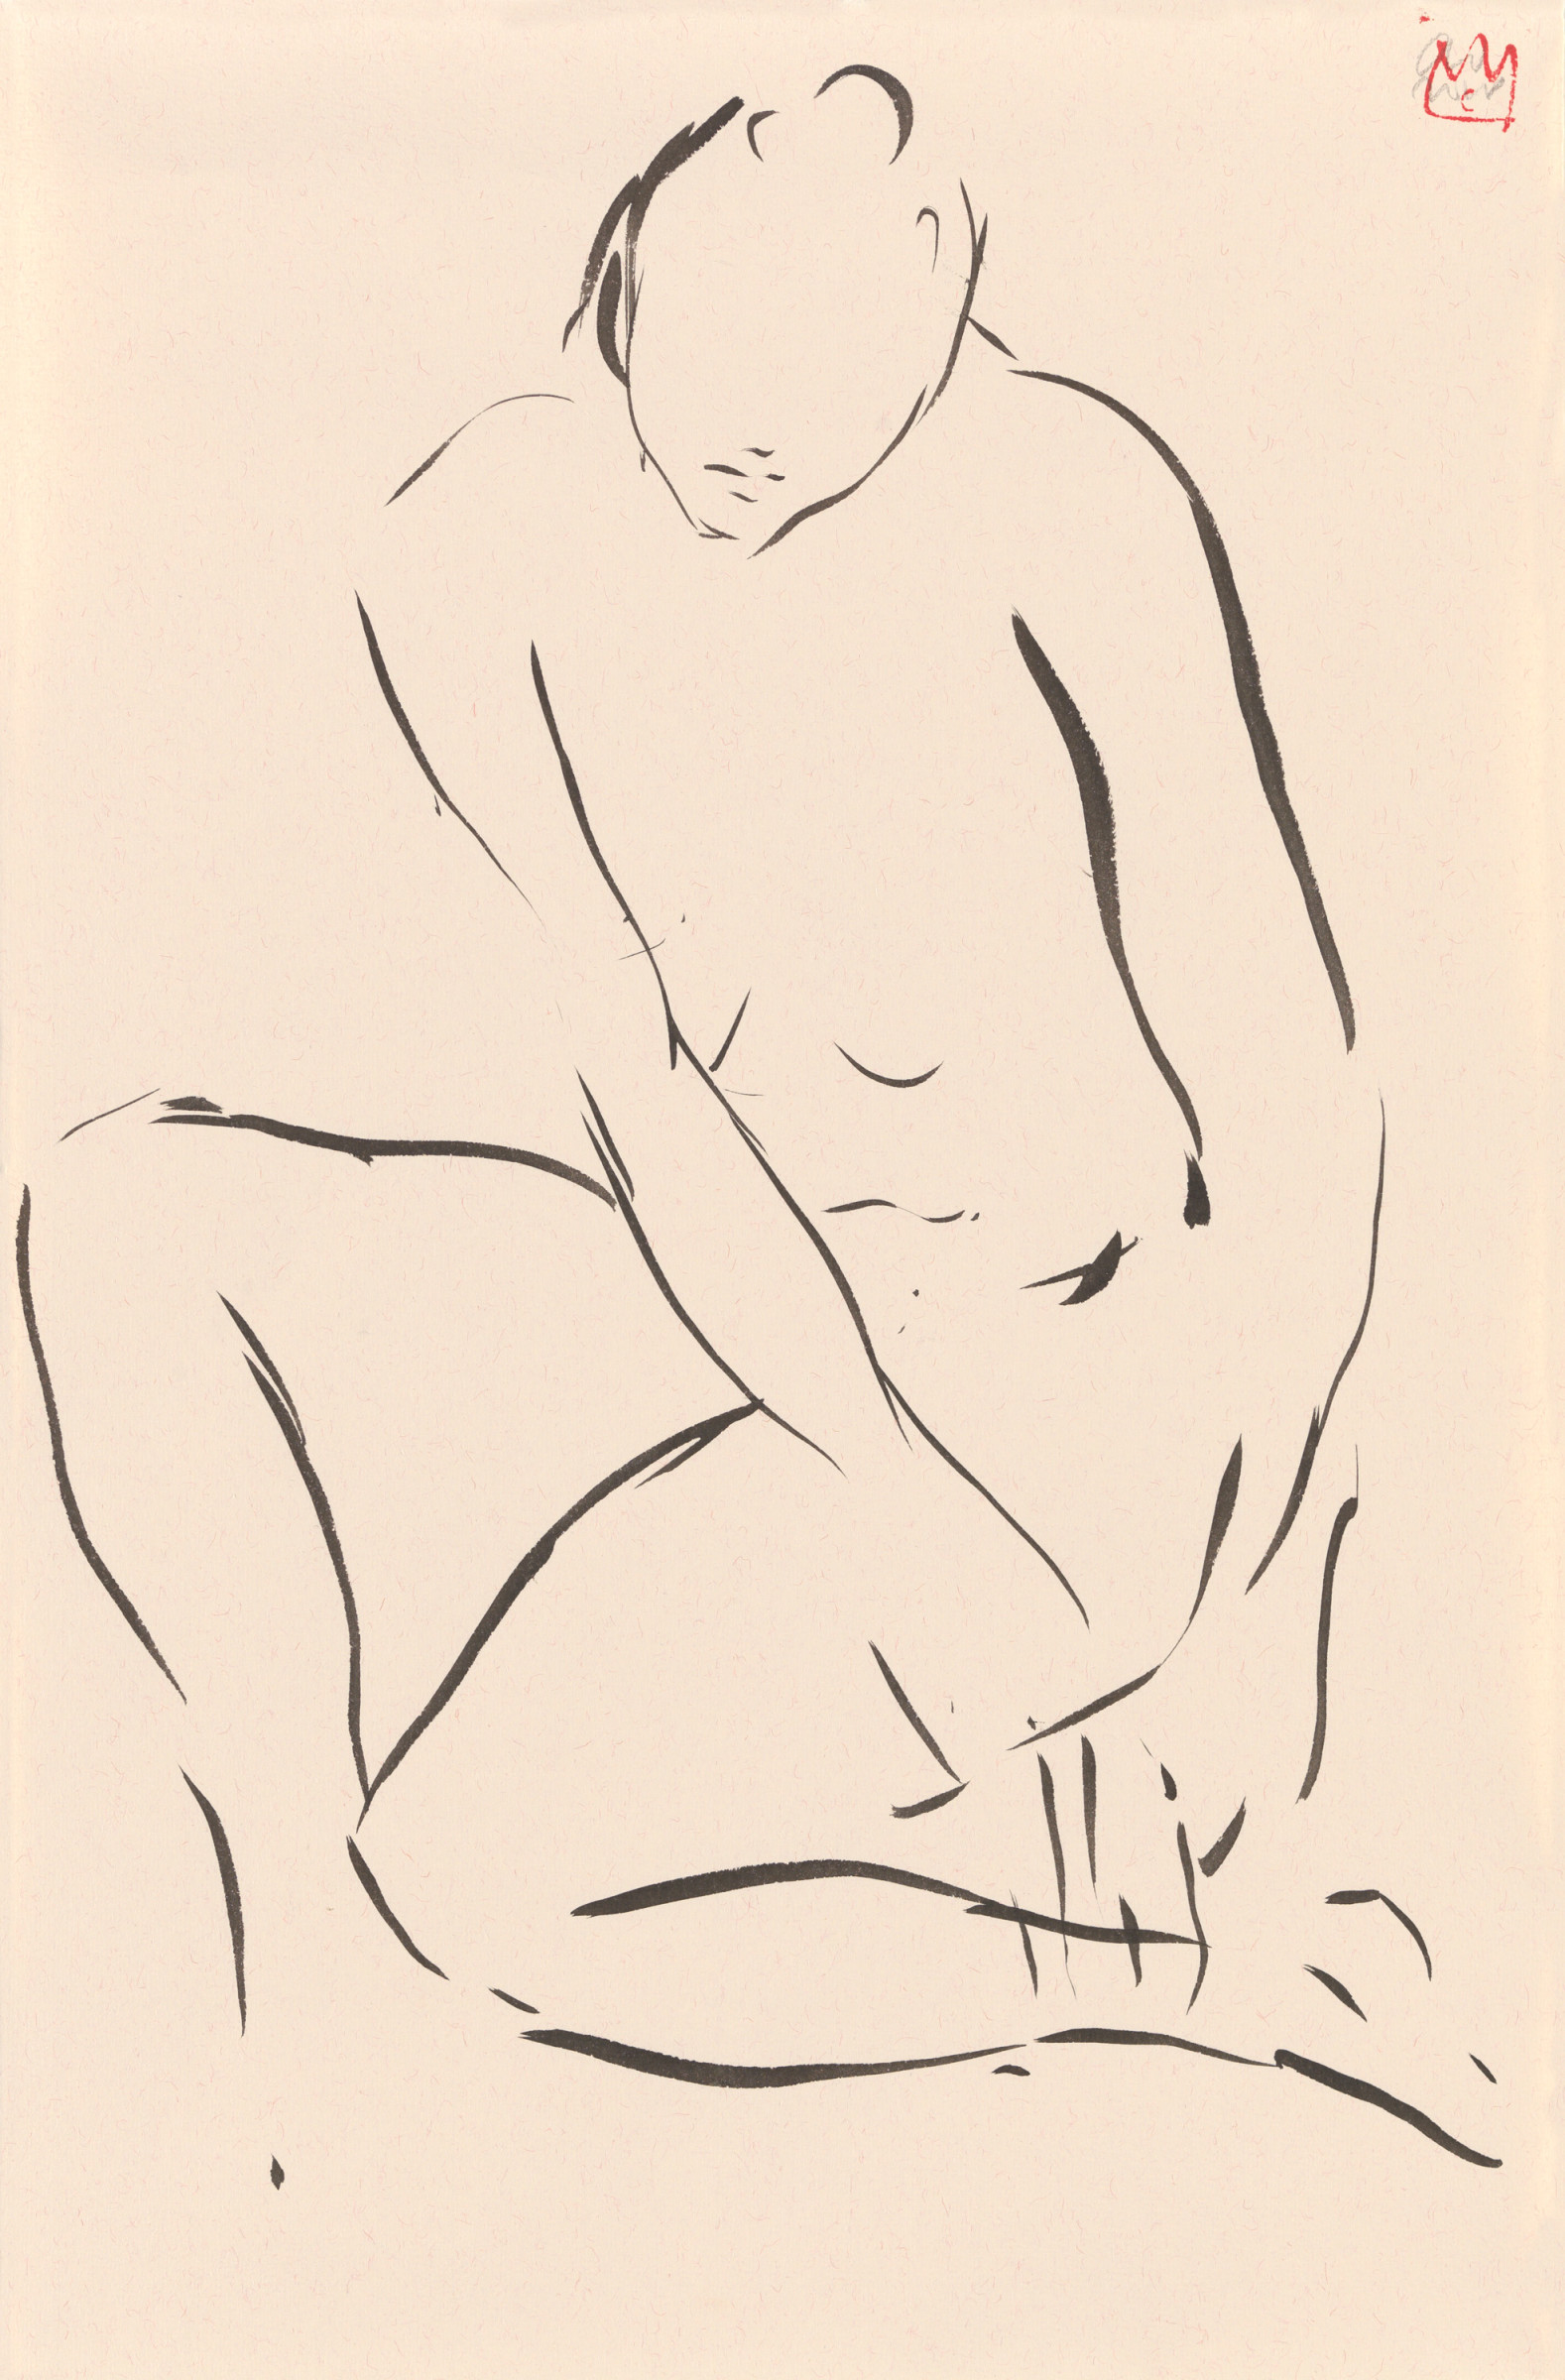 <span class=&#34;link fancybox-details-link&#34;><a href=&#34;/artists/47-cathalijn-wouters/works/4602-cathalijn-wouters-seated-nude-ii-2018/&#34;>View Detail Page</a></span><div class=&#34;artist&#34;><strong>Cathalijn Wouters</strong></div> <div class=&#34;title&#34;><em>Seated Nude - II</em>, 2018</div> <div class=&#34;medium&#34;>Ink on paper in perspex box</div> <div class=&#34;dimensions&#34;>63 x 48 cm</div>